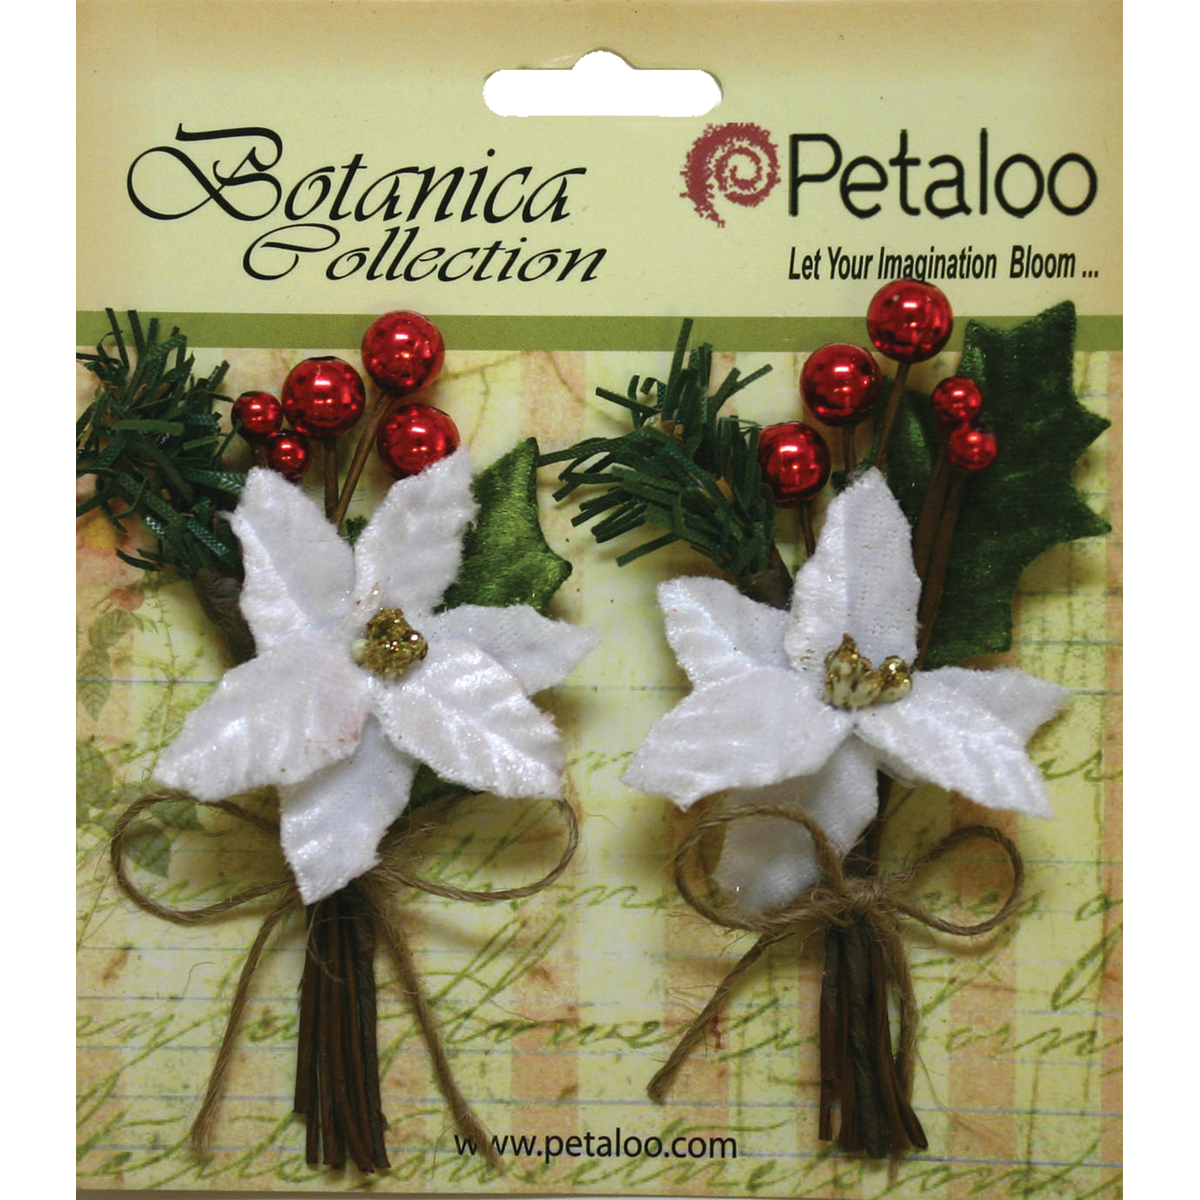 "Botanica Holiday Pine Picks 1.75""X3.5"" 2/Pkg-W/White Poinsettia & Red Berries"